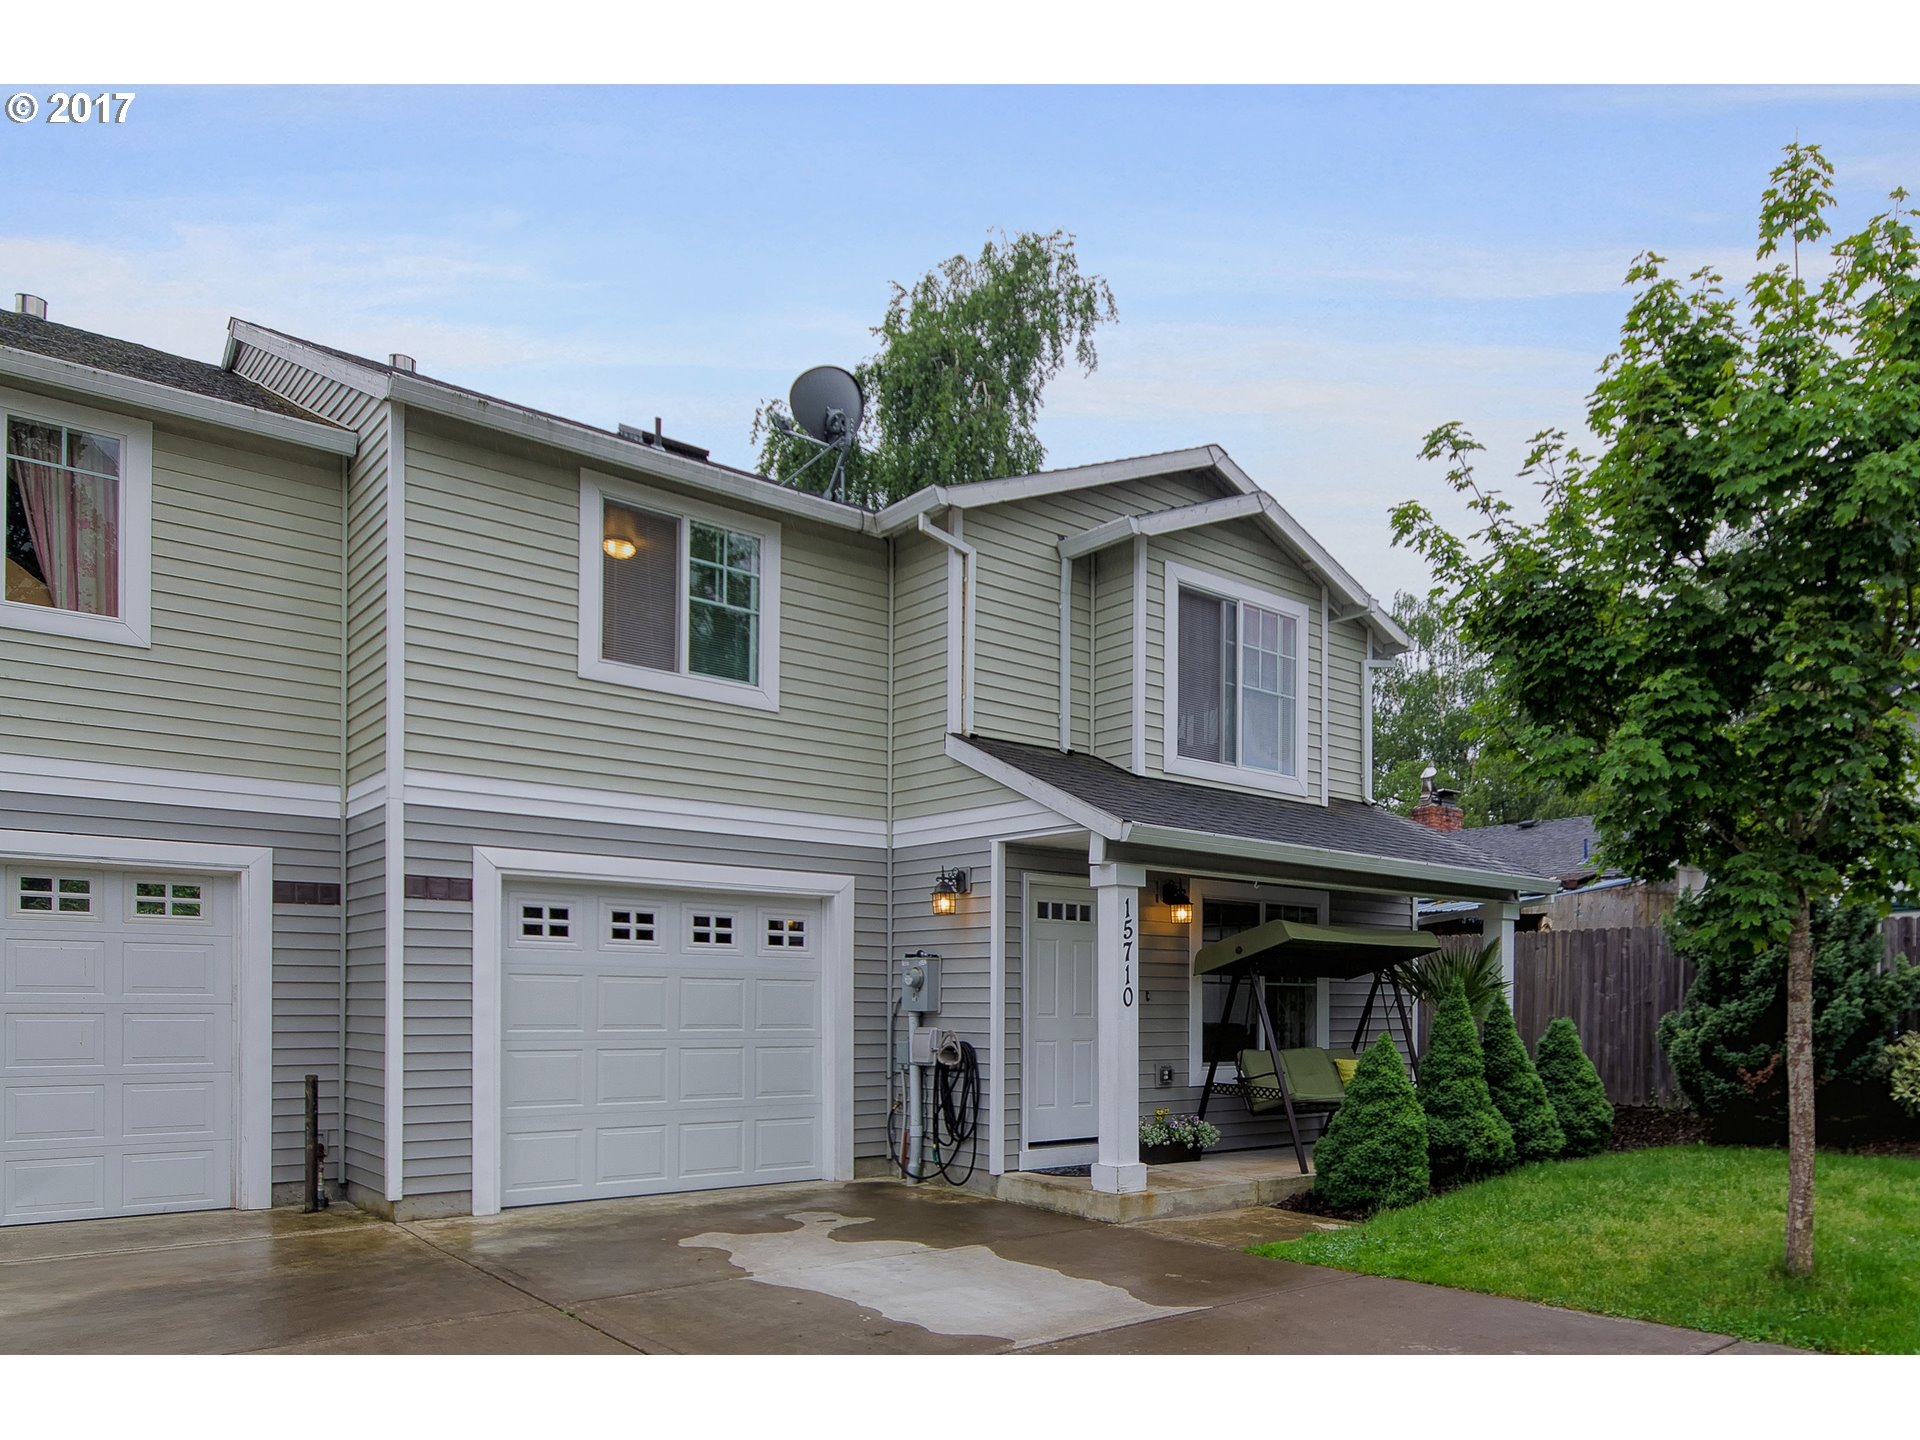 1828 sq. ft 4 bedrooms 2 bathrooms  House For Sale,Portland, OR